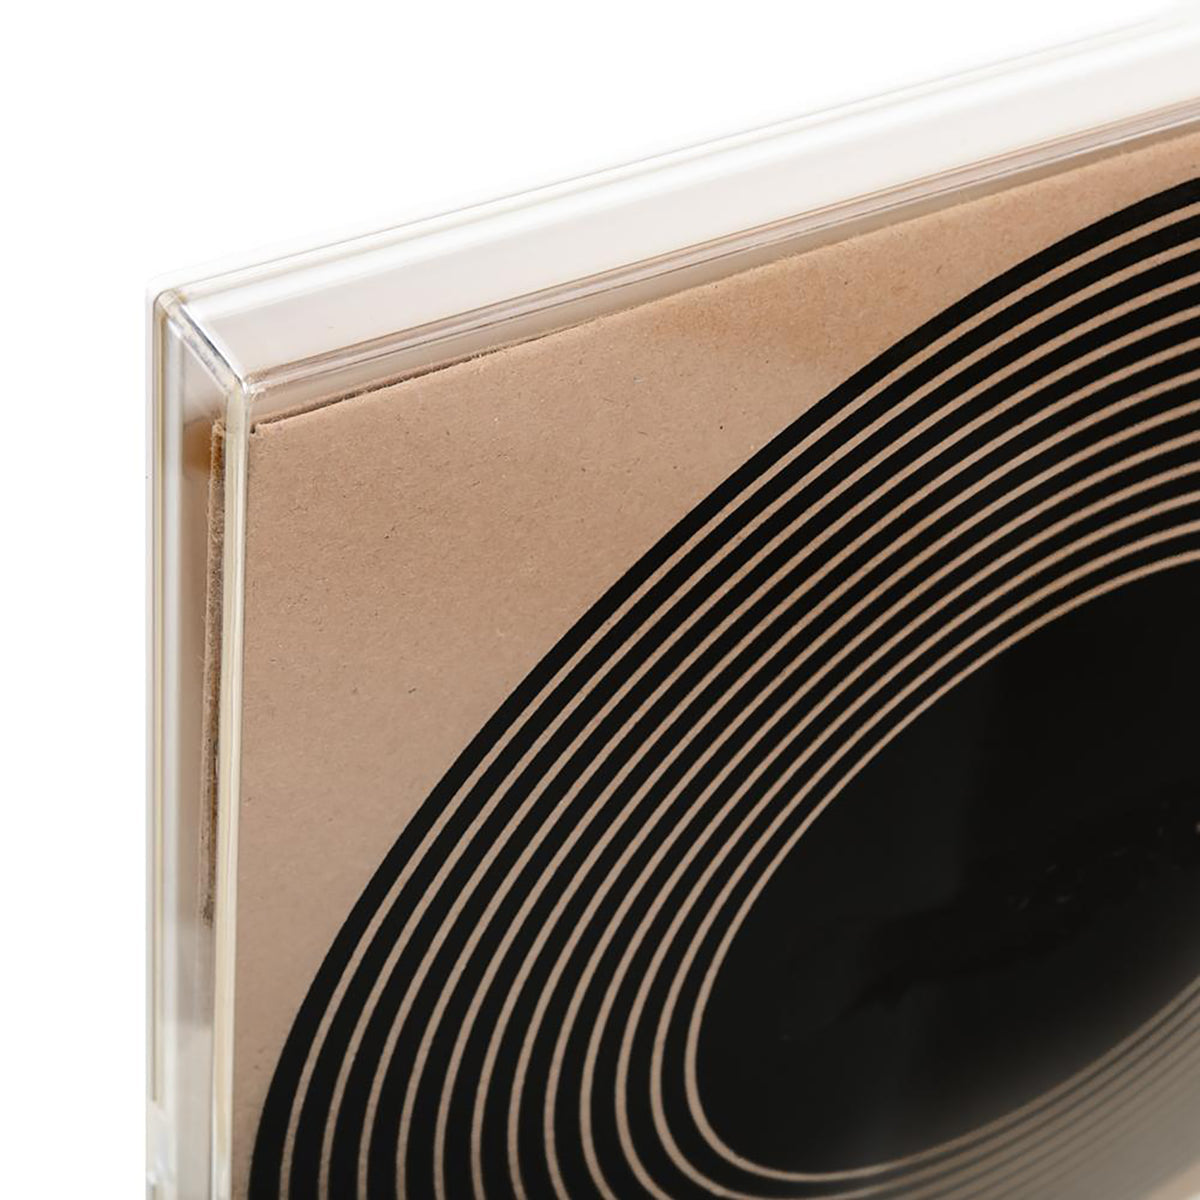 Art Of Records: CLRCASE Vinyl Record Display Case - Black